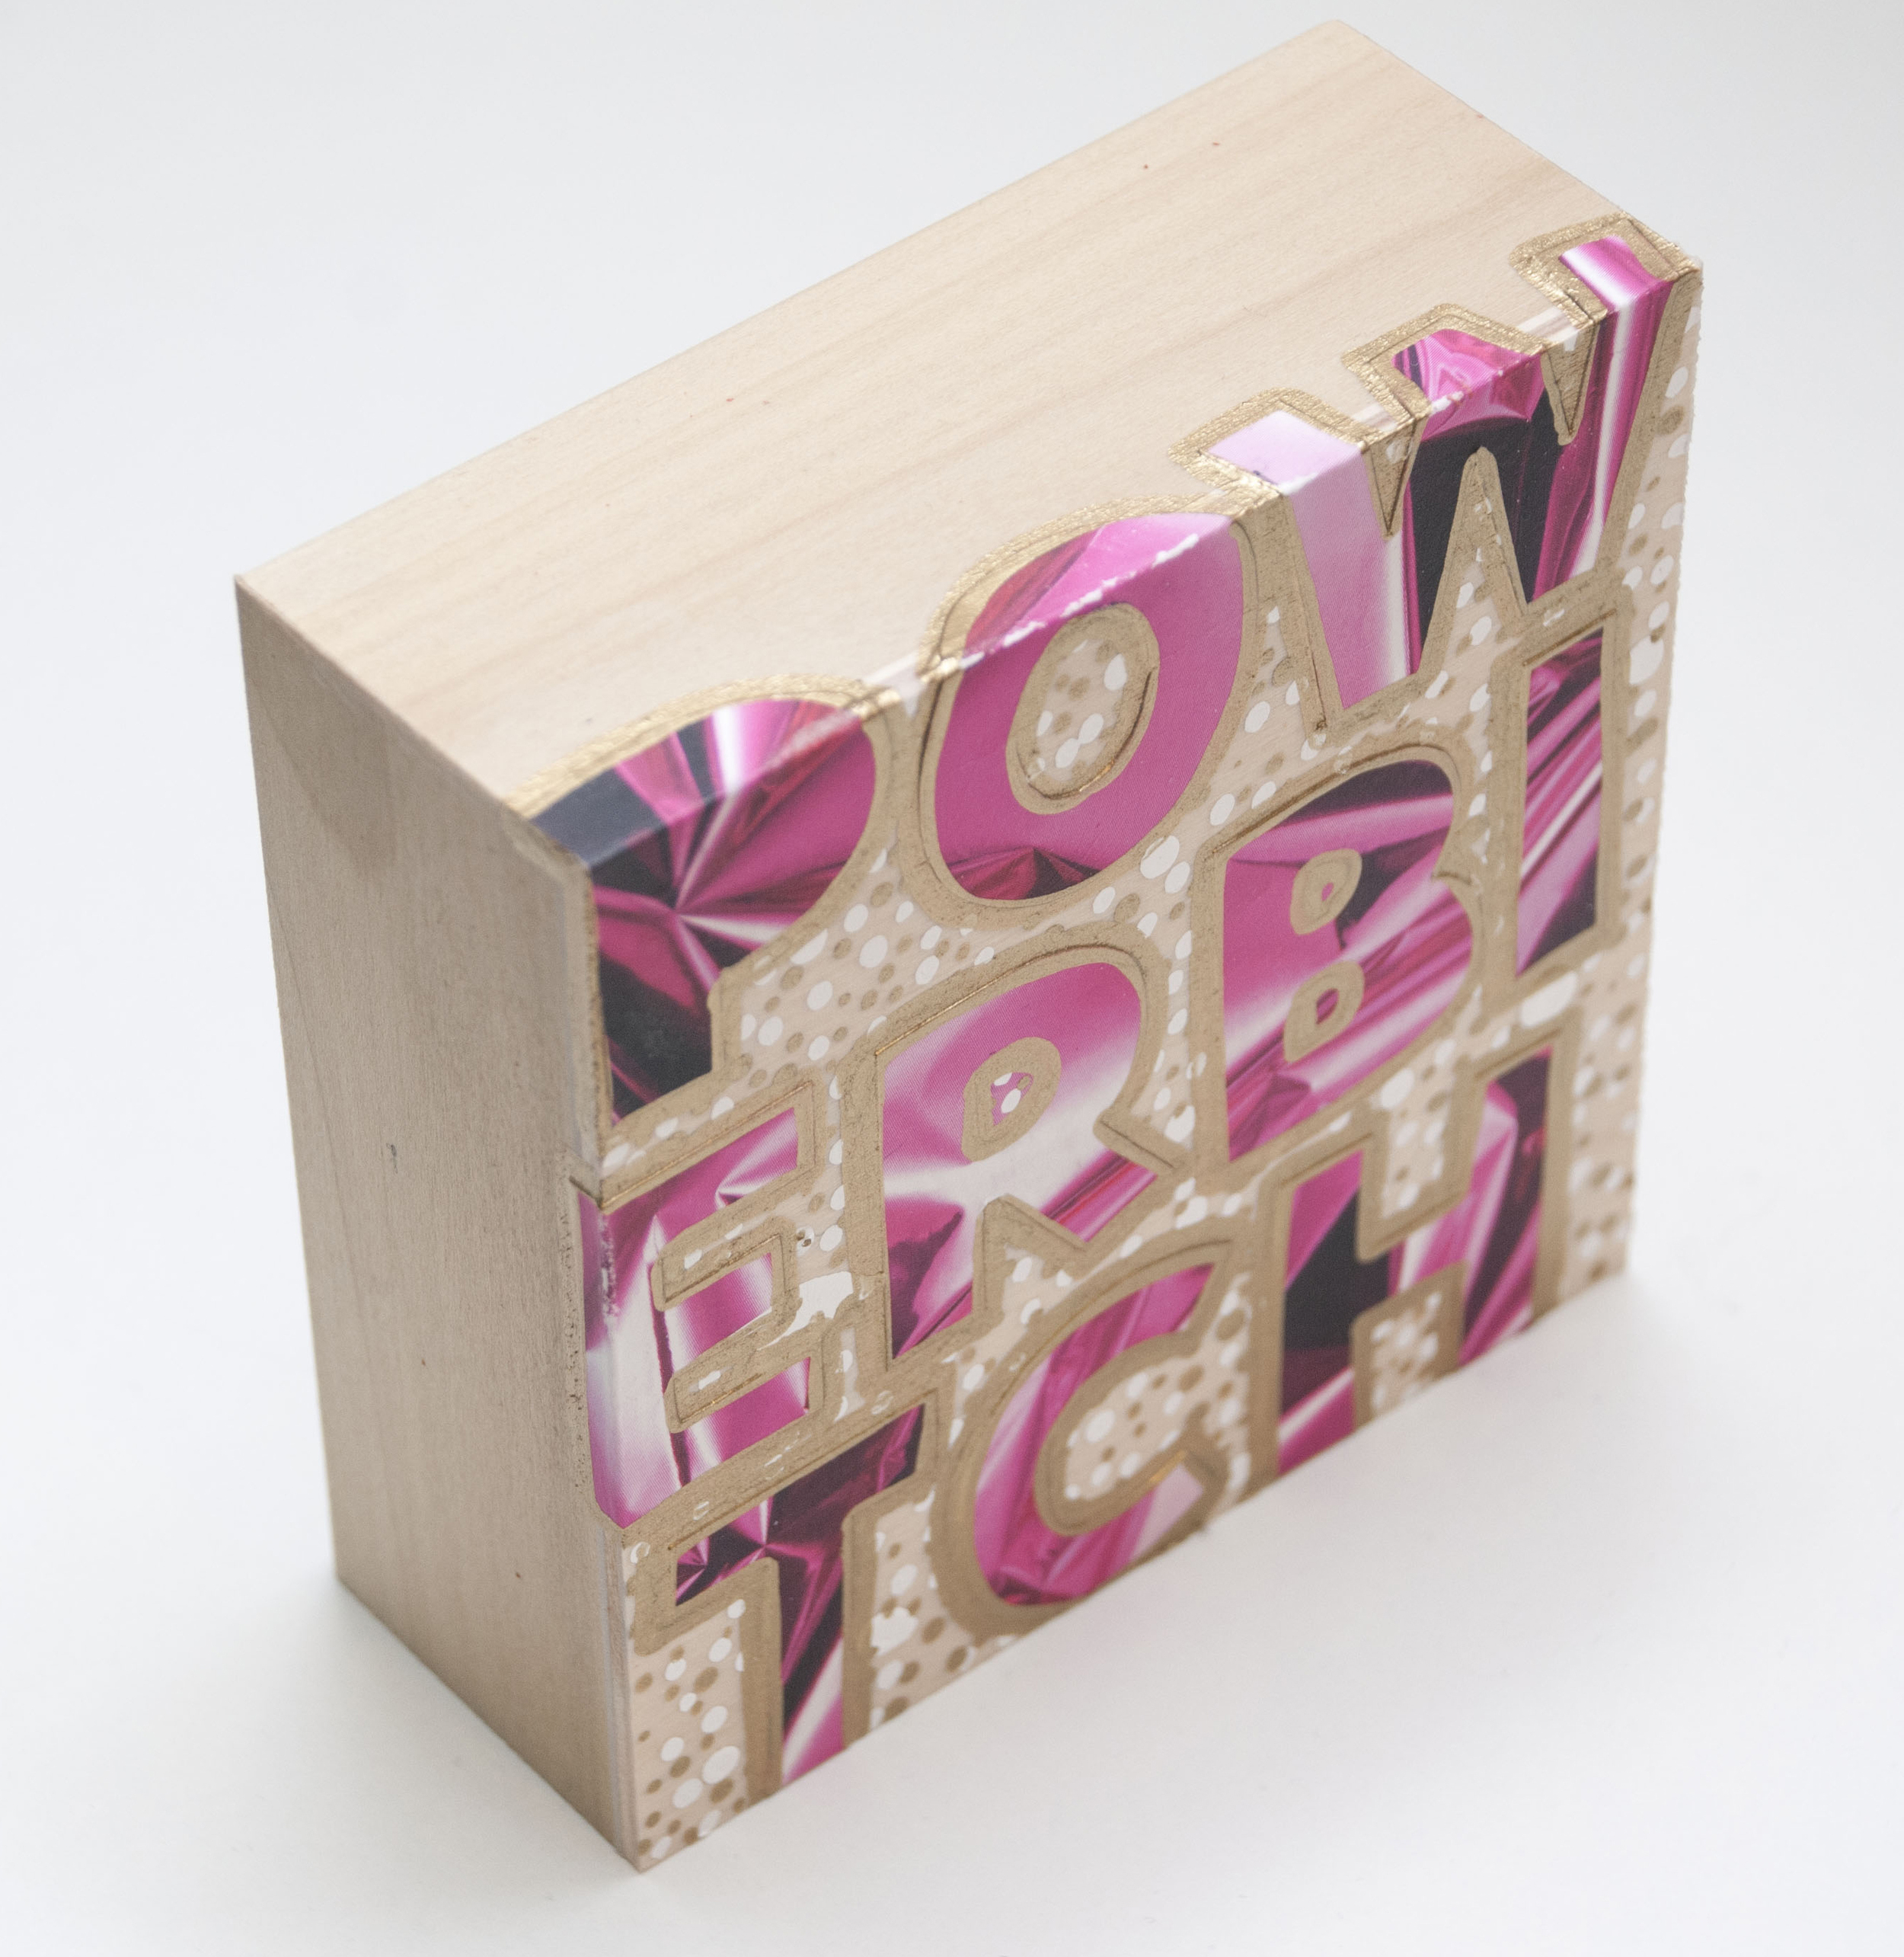 Powerbitch , 2016 Acrylic, enamel, and catalog pages on wood 4 x 4 x 1 5/8 inches